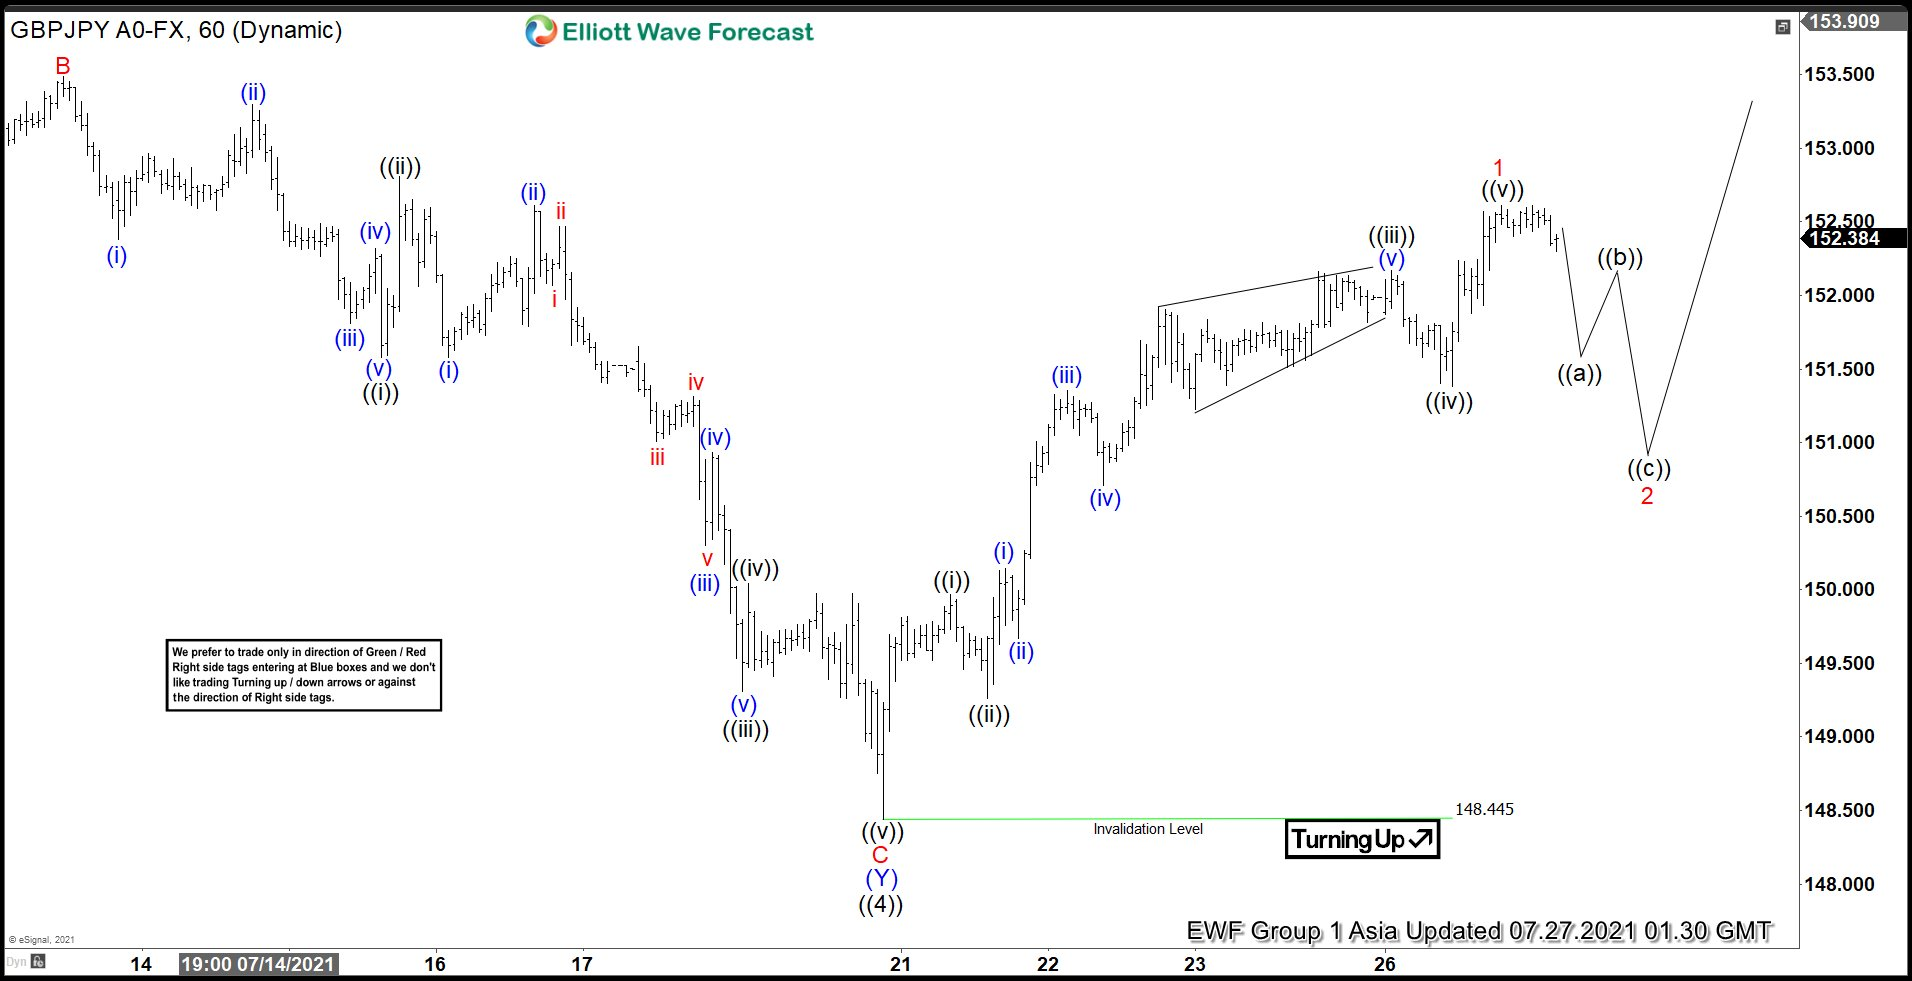 Elliott Wave View: GBPJPY Ended Correction